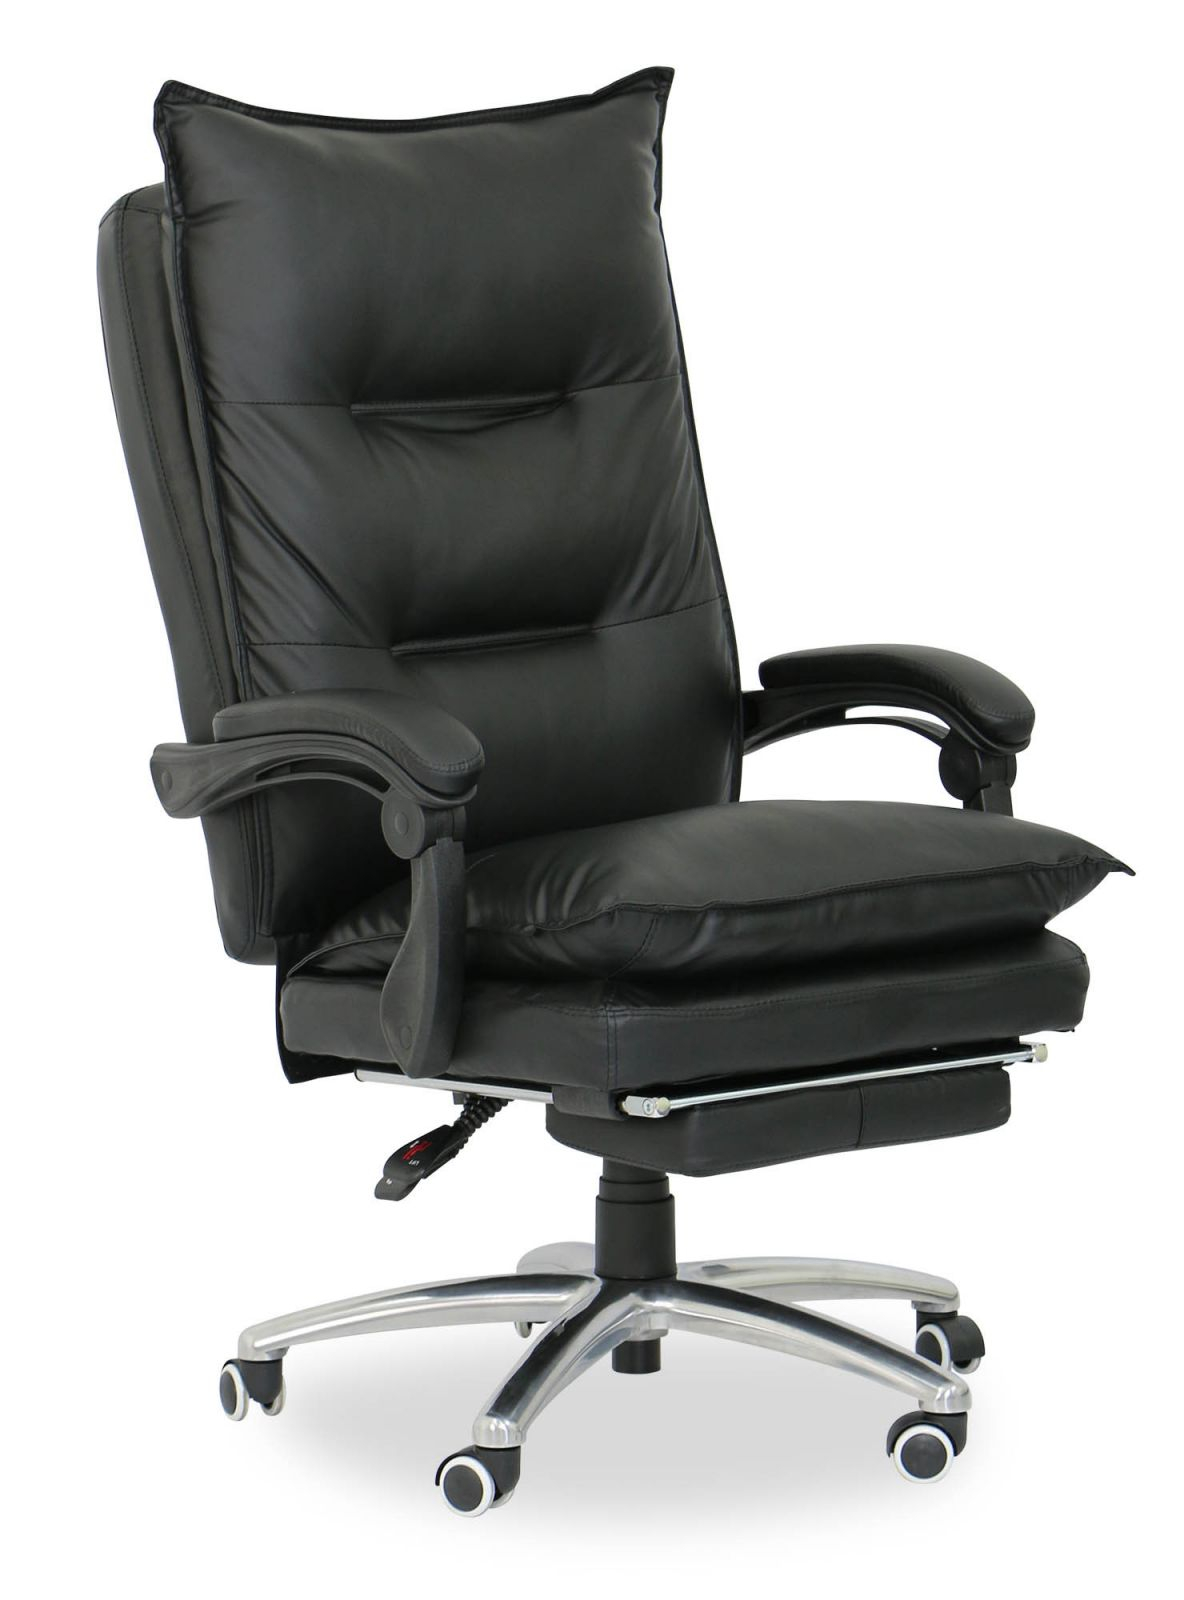 Deluxe Pu Executive Office Chair (Black) - Office Chairs - Study throughout New Executive Office Chair